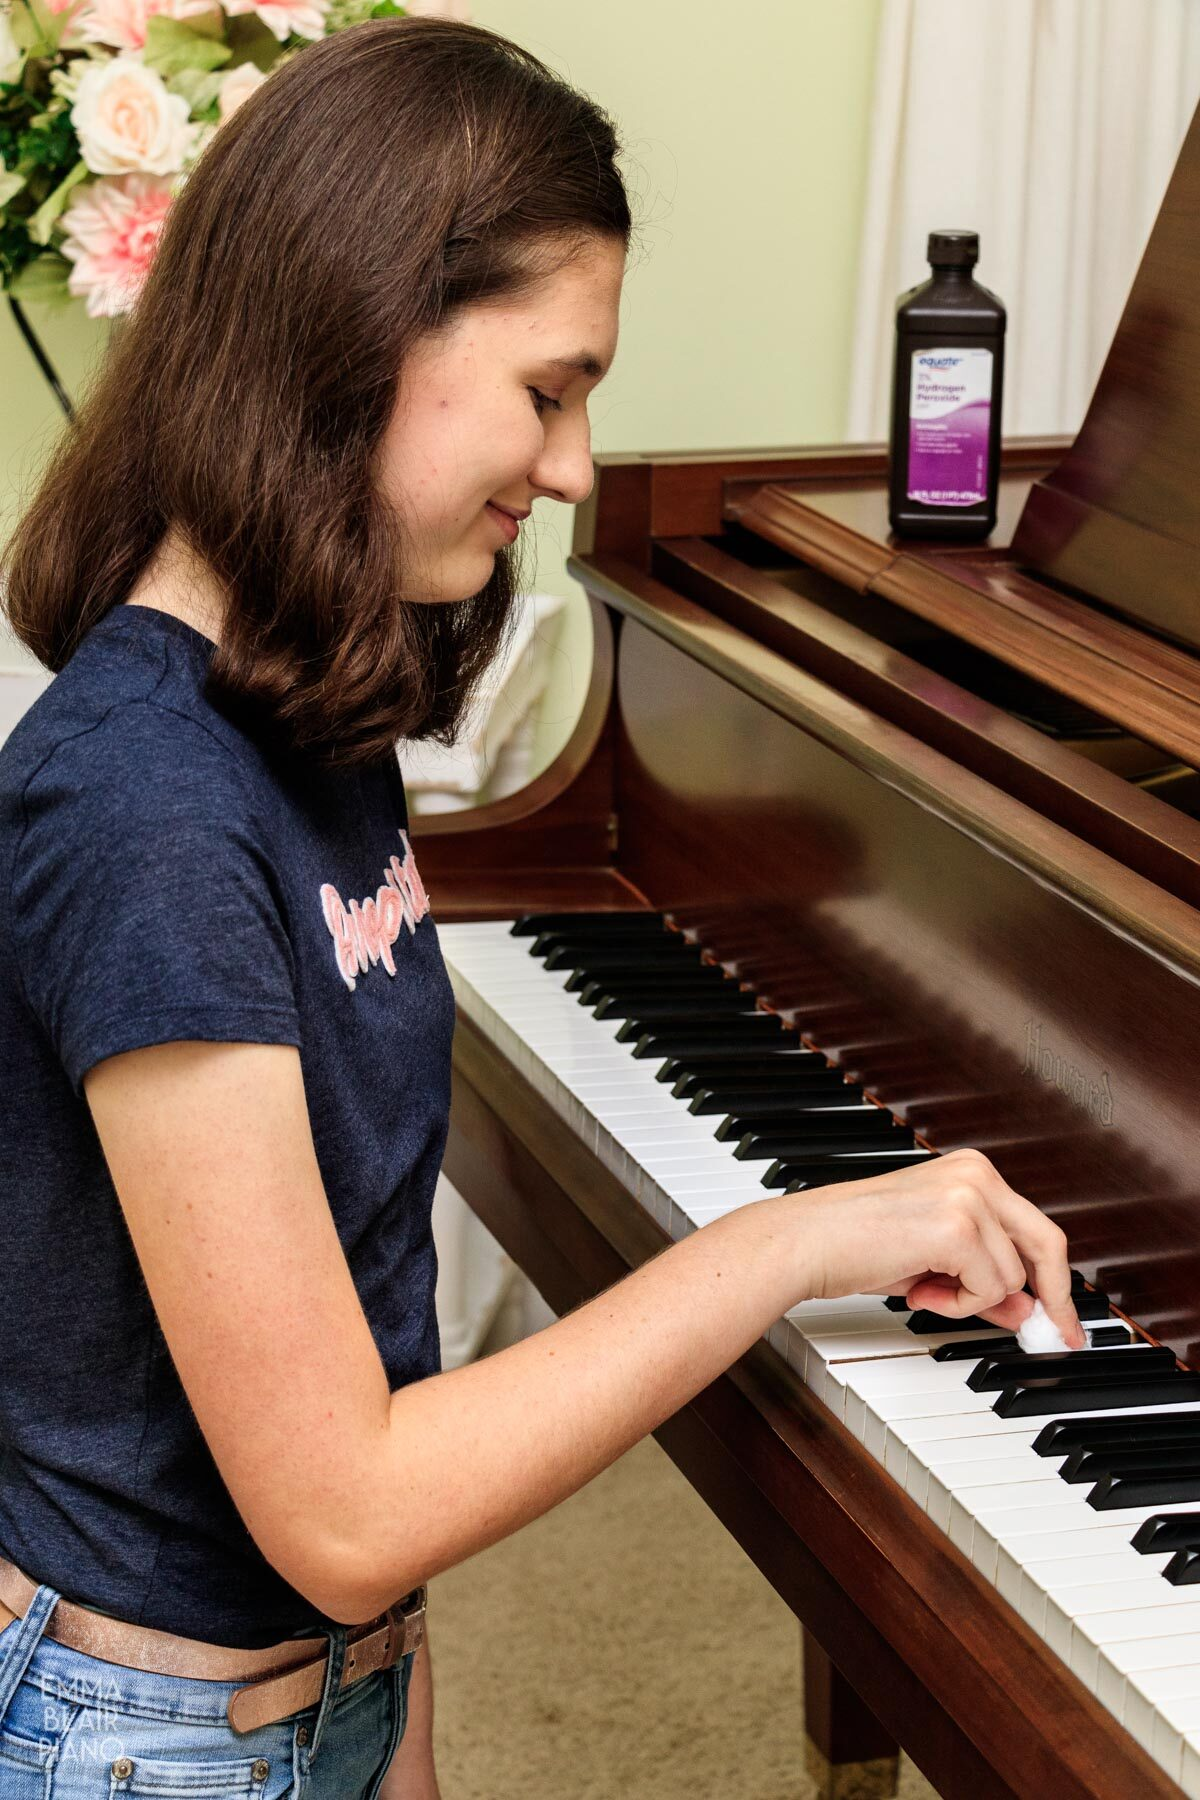 girl cleaning piano keys with hydrogen peroxide on a cotton ball